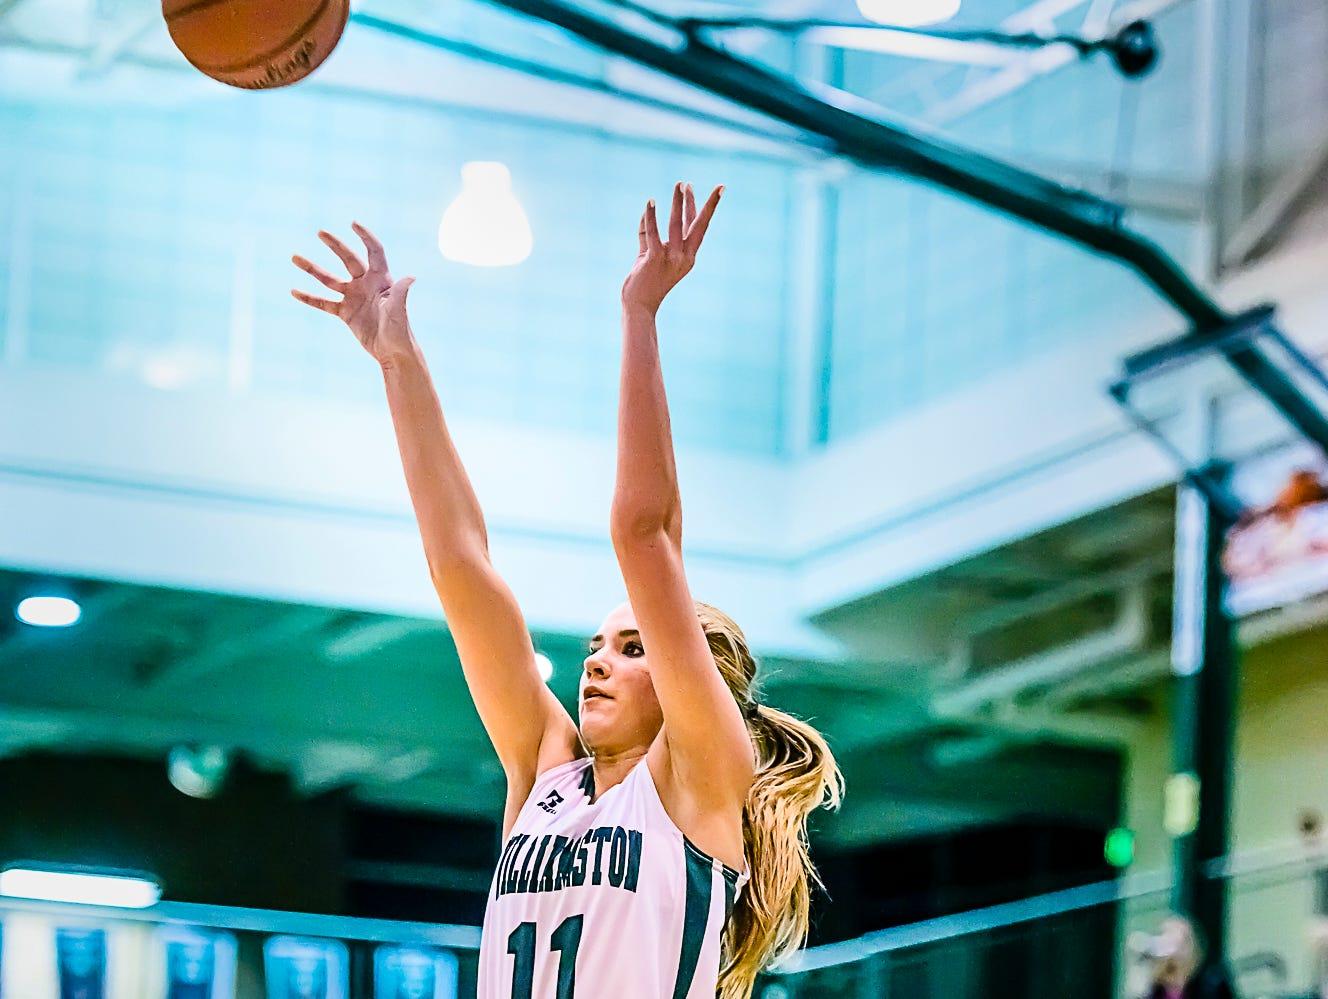 Paige Basore of Williamston puts up a jump shot during the Hornets' game with Waverly Tuesday.